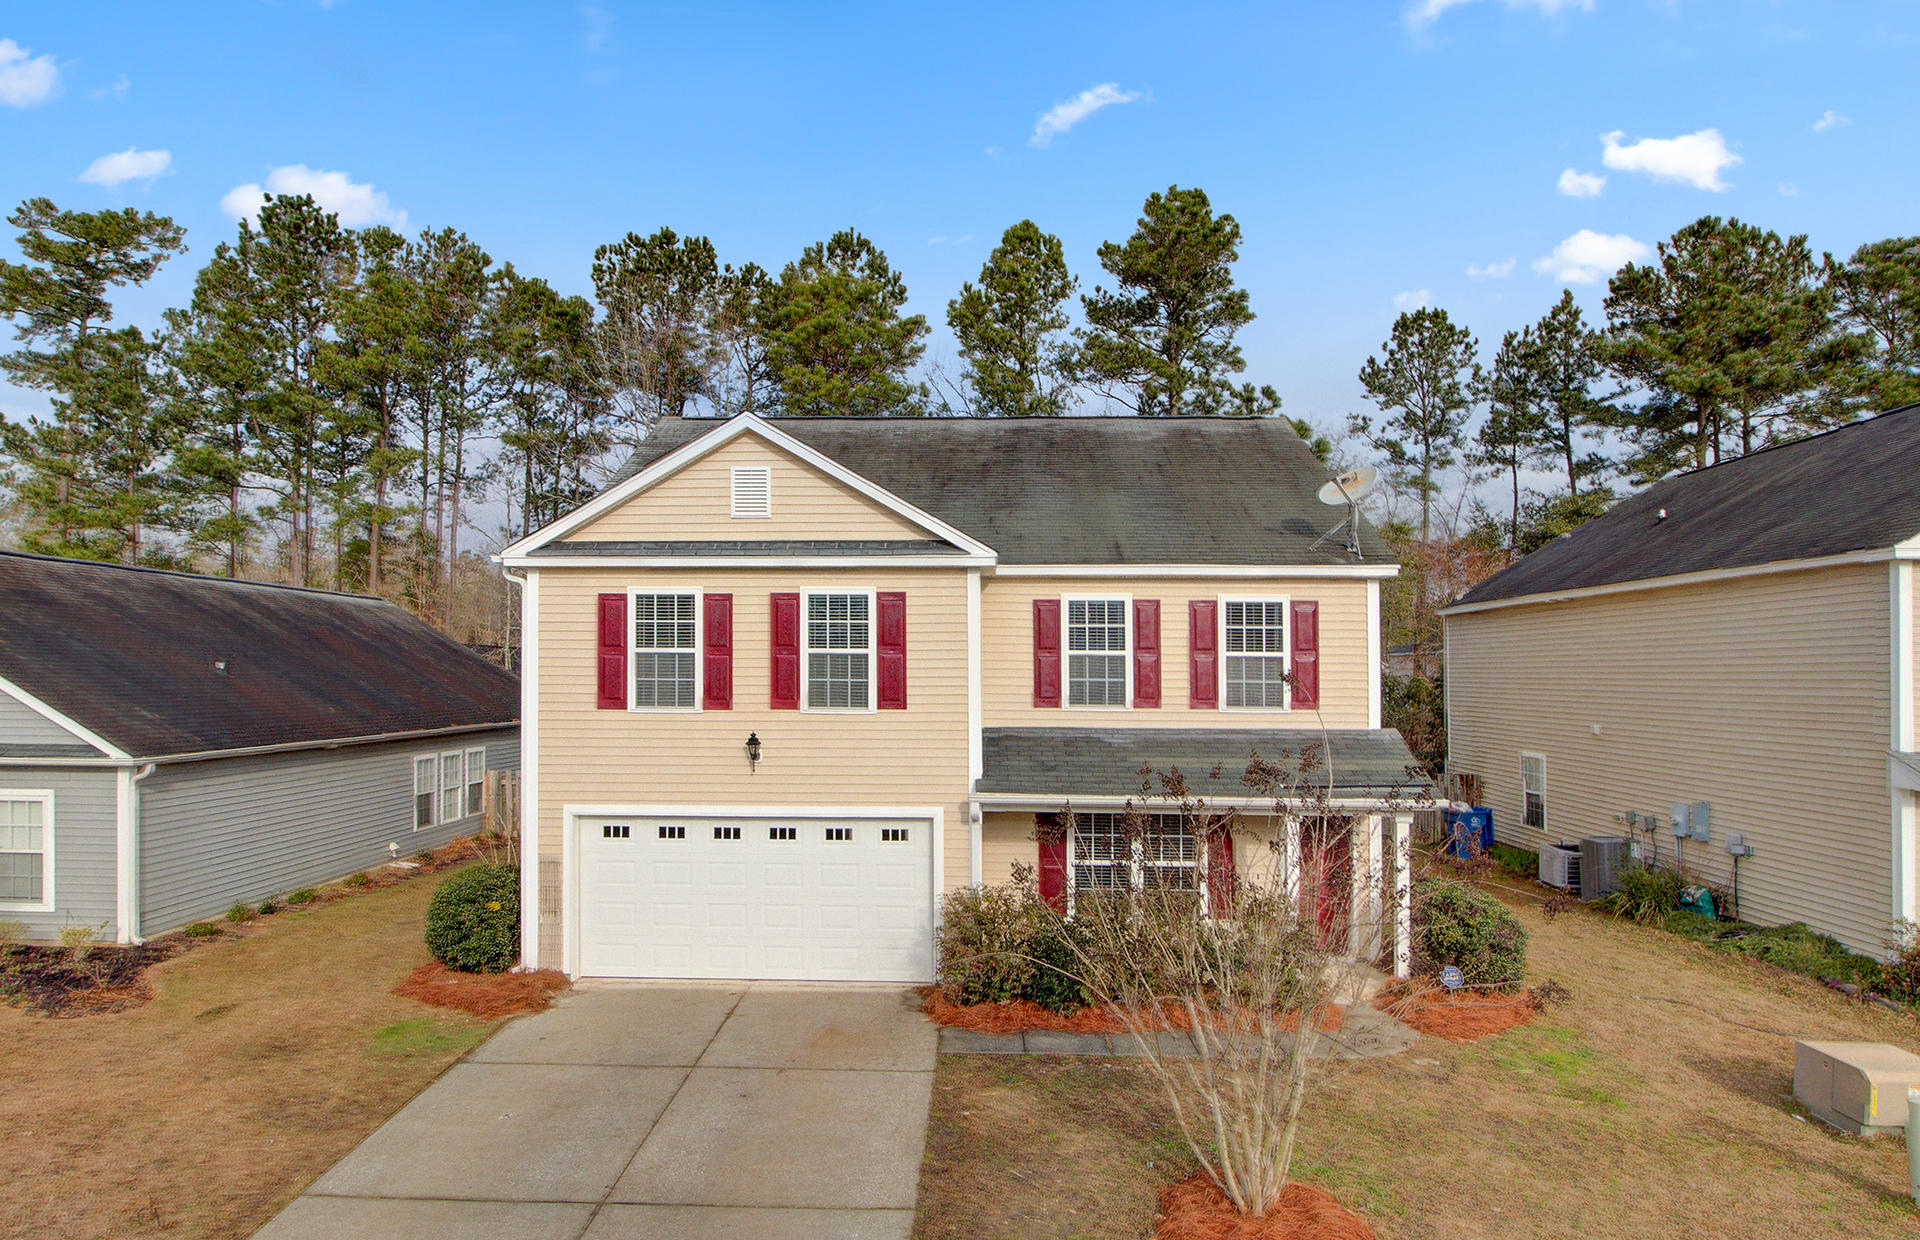 214 Myrtle Way Summerville, Sc 29483